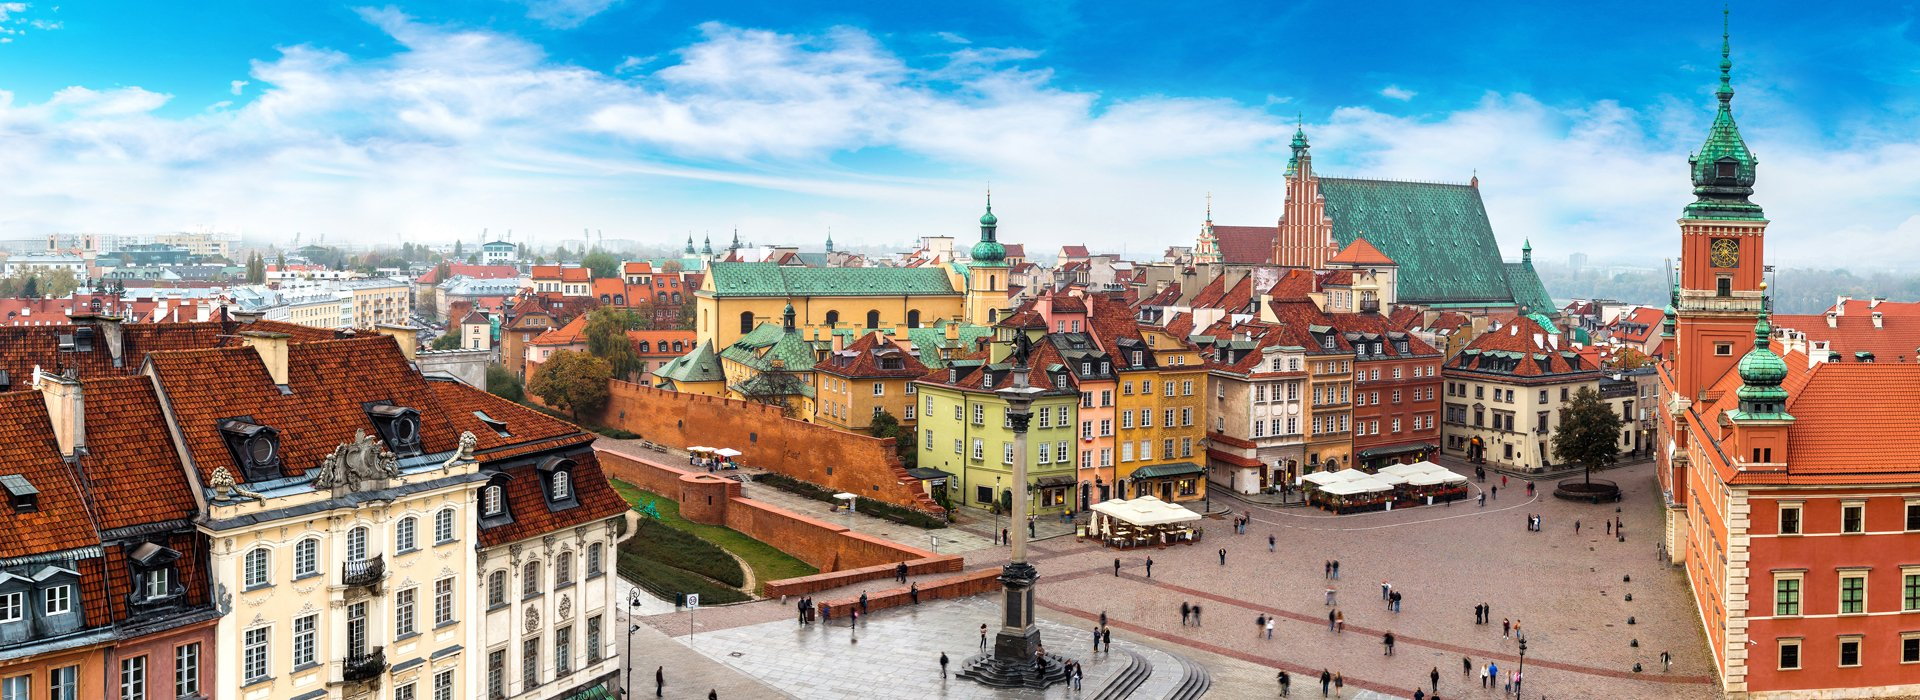 beautiful day on the castle square in warsaw